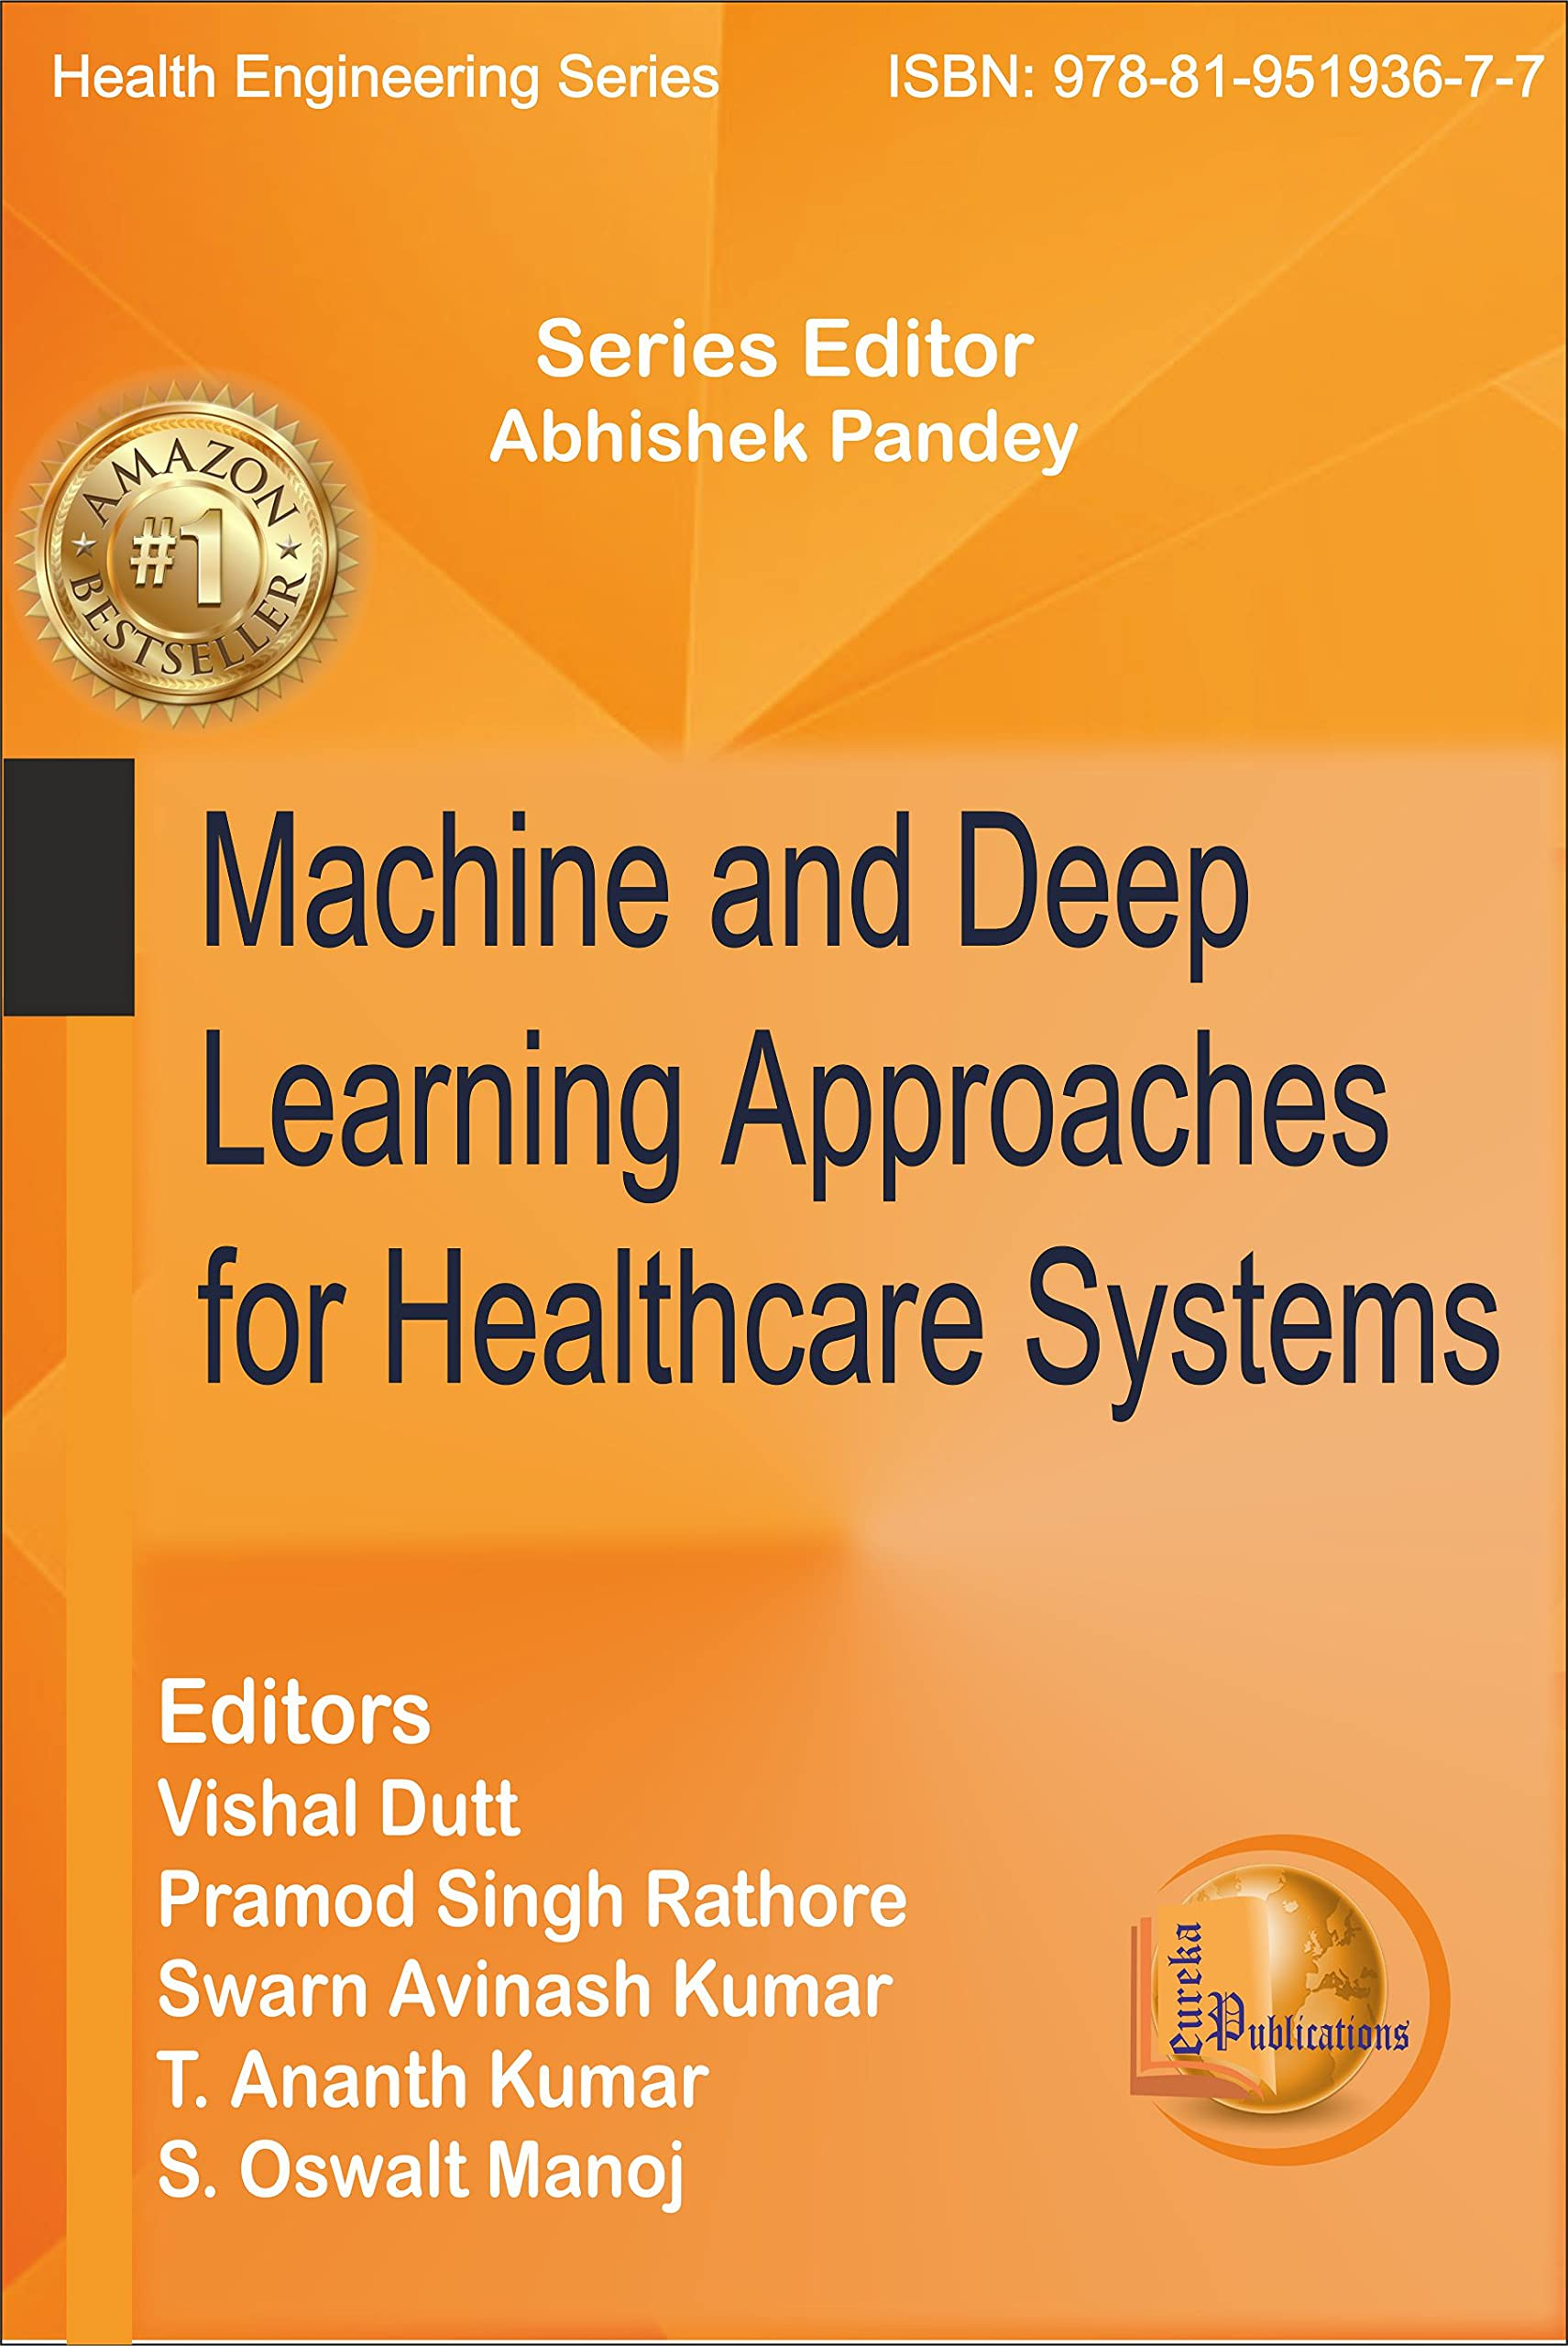 Machine and Deep Learning Approaches for Healthcare Systems